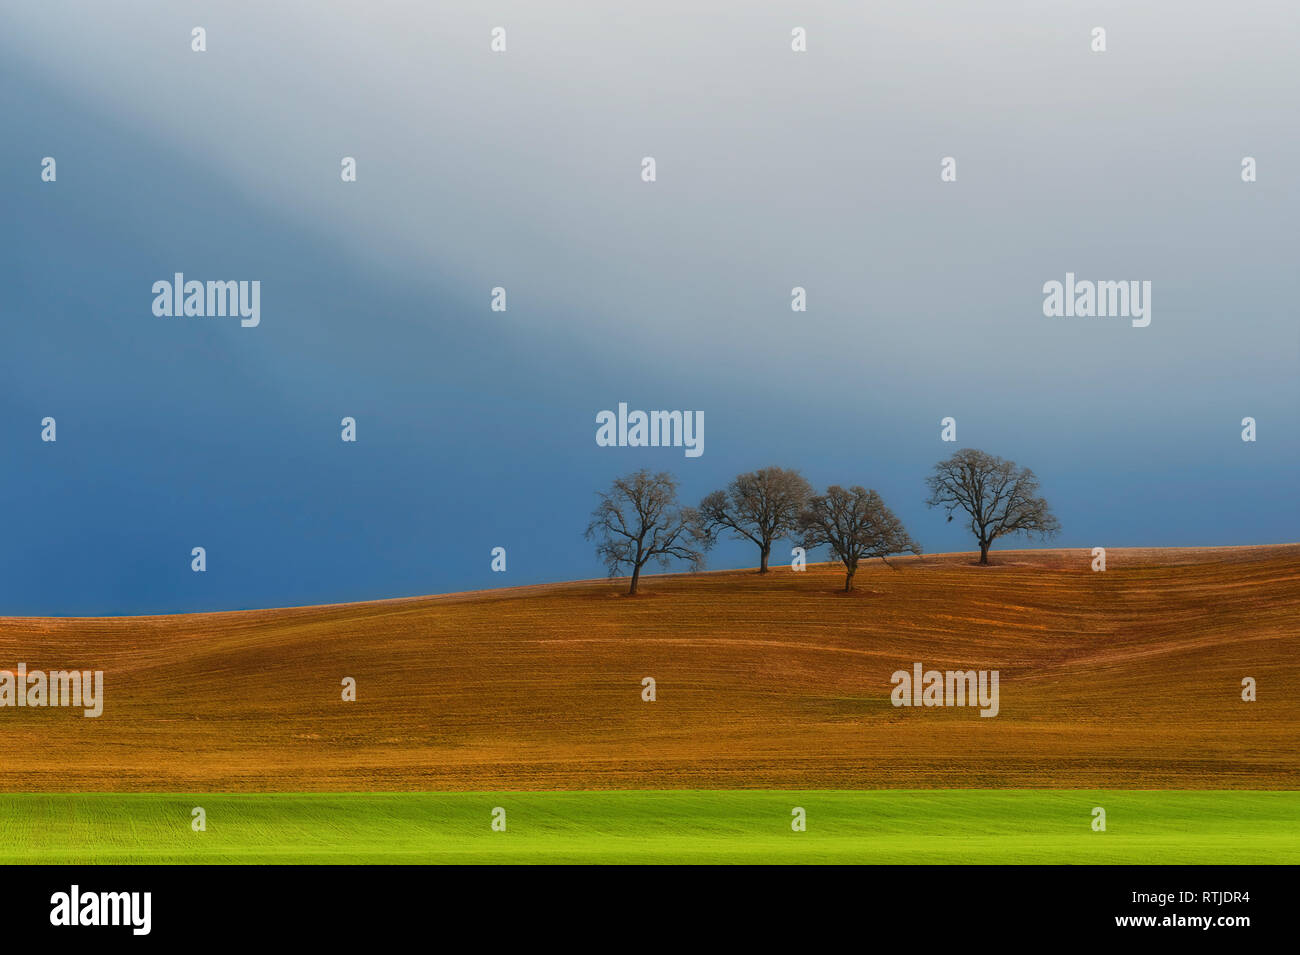 Minimalist landscape of trees on hillside under cloudy skies. Stock Photo